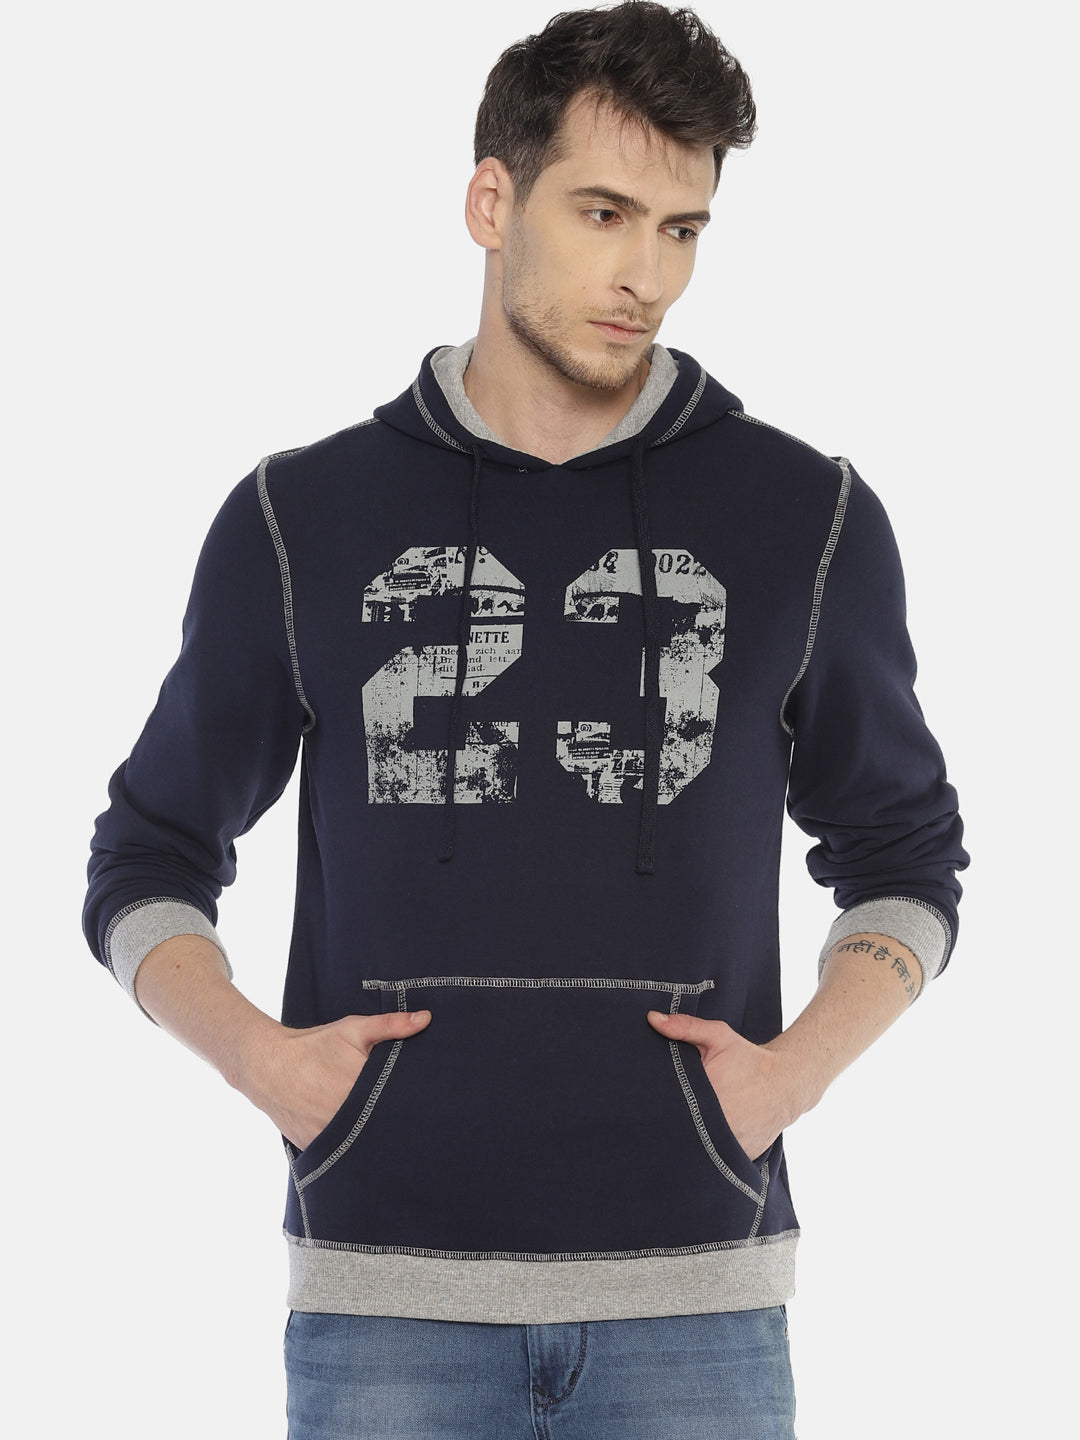 Steenbok Men's Navy Printed Hooded Sweatshirt